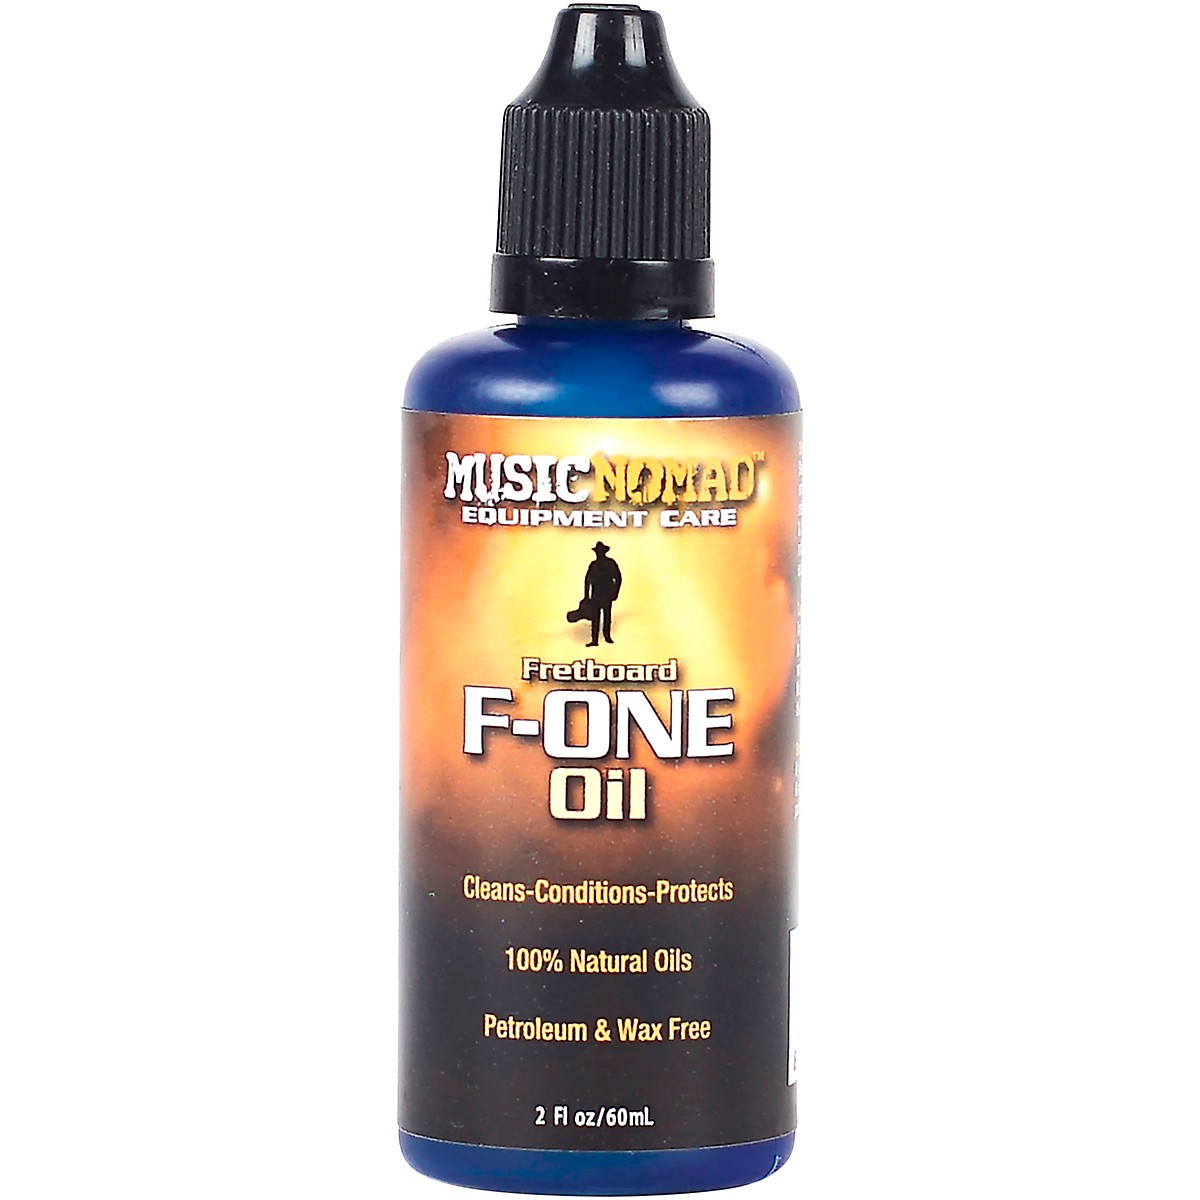 MusicNomad Fretboard F-ONE Oil - Cleaner & Conditioner - 2 oz.